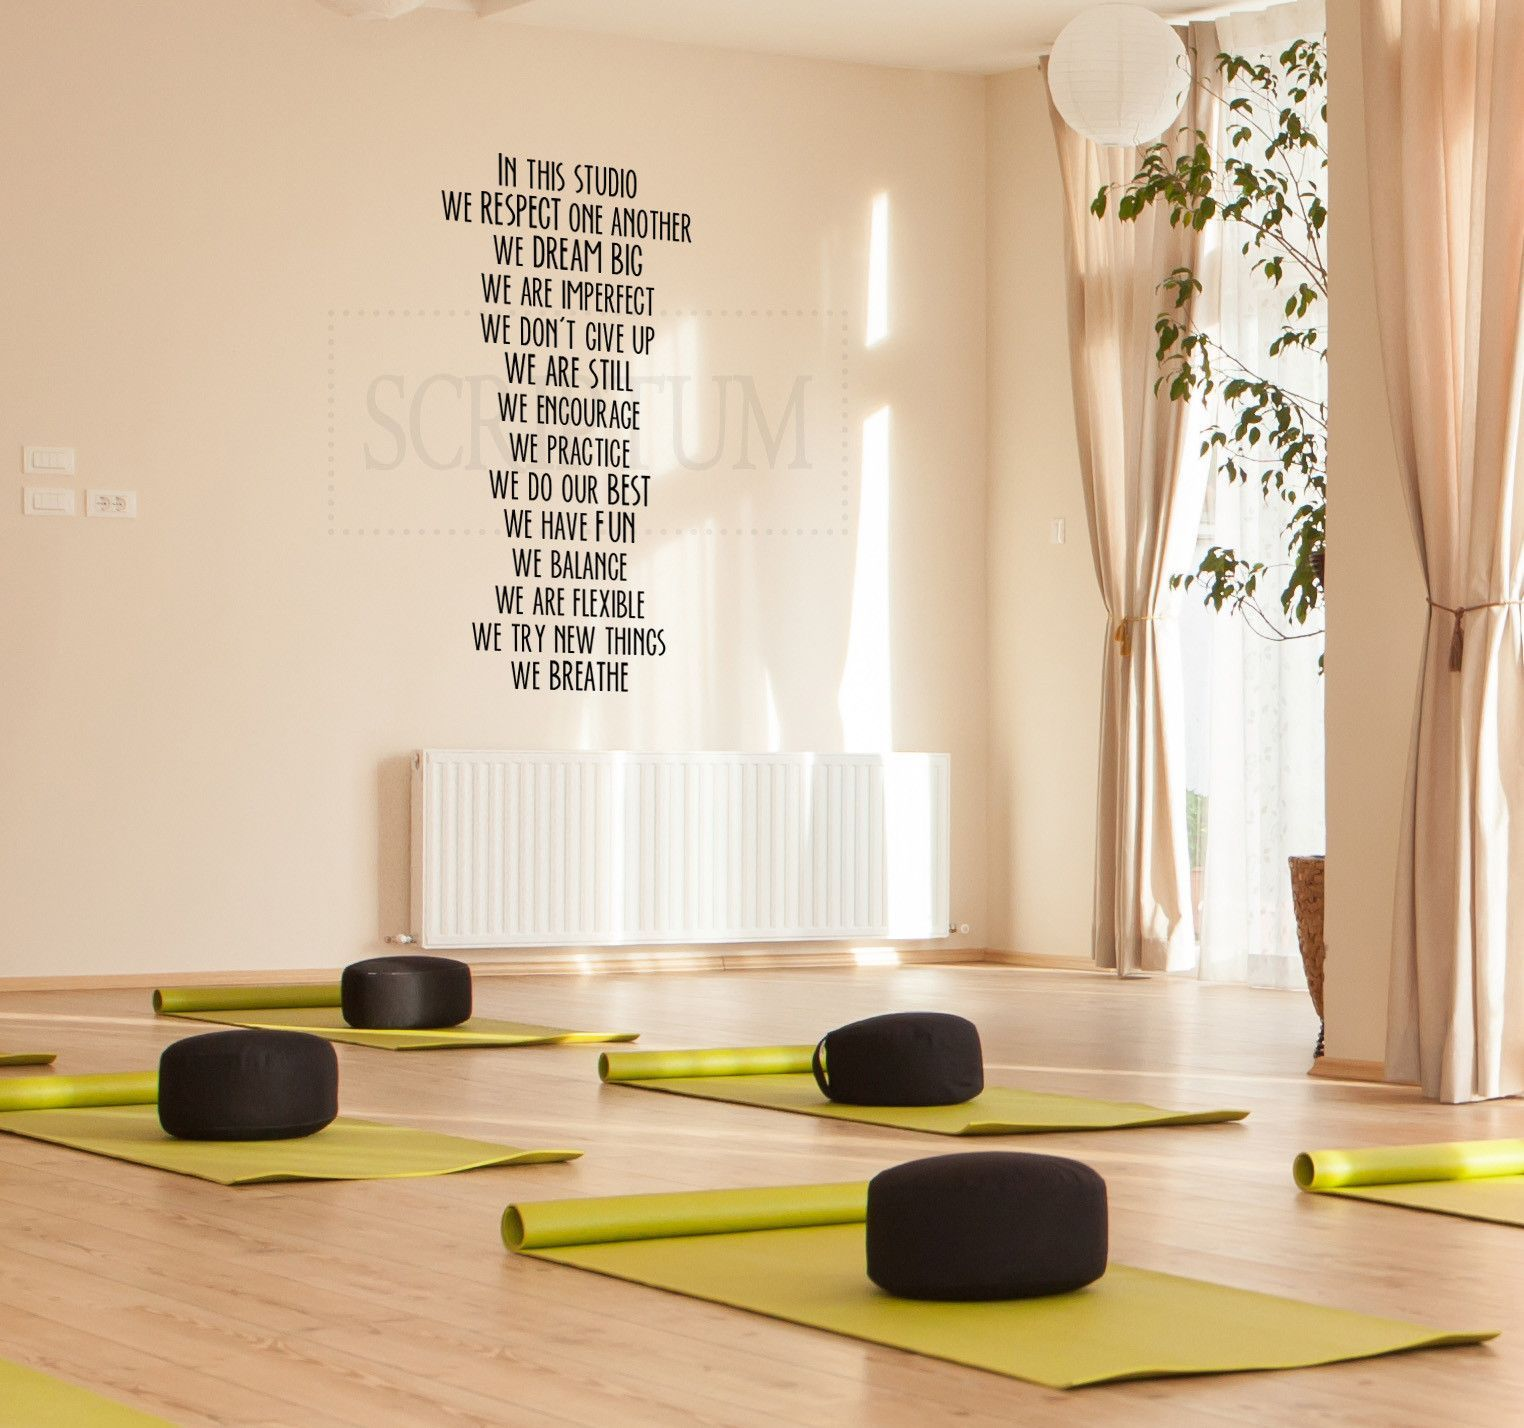 In This Studio Yoga Studio Wall Decal Vinyl Decal Wall - Yoga studio wall decals